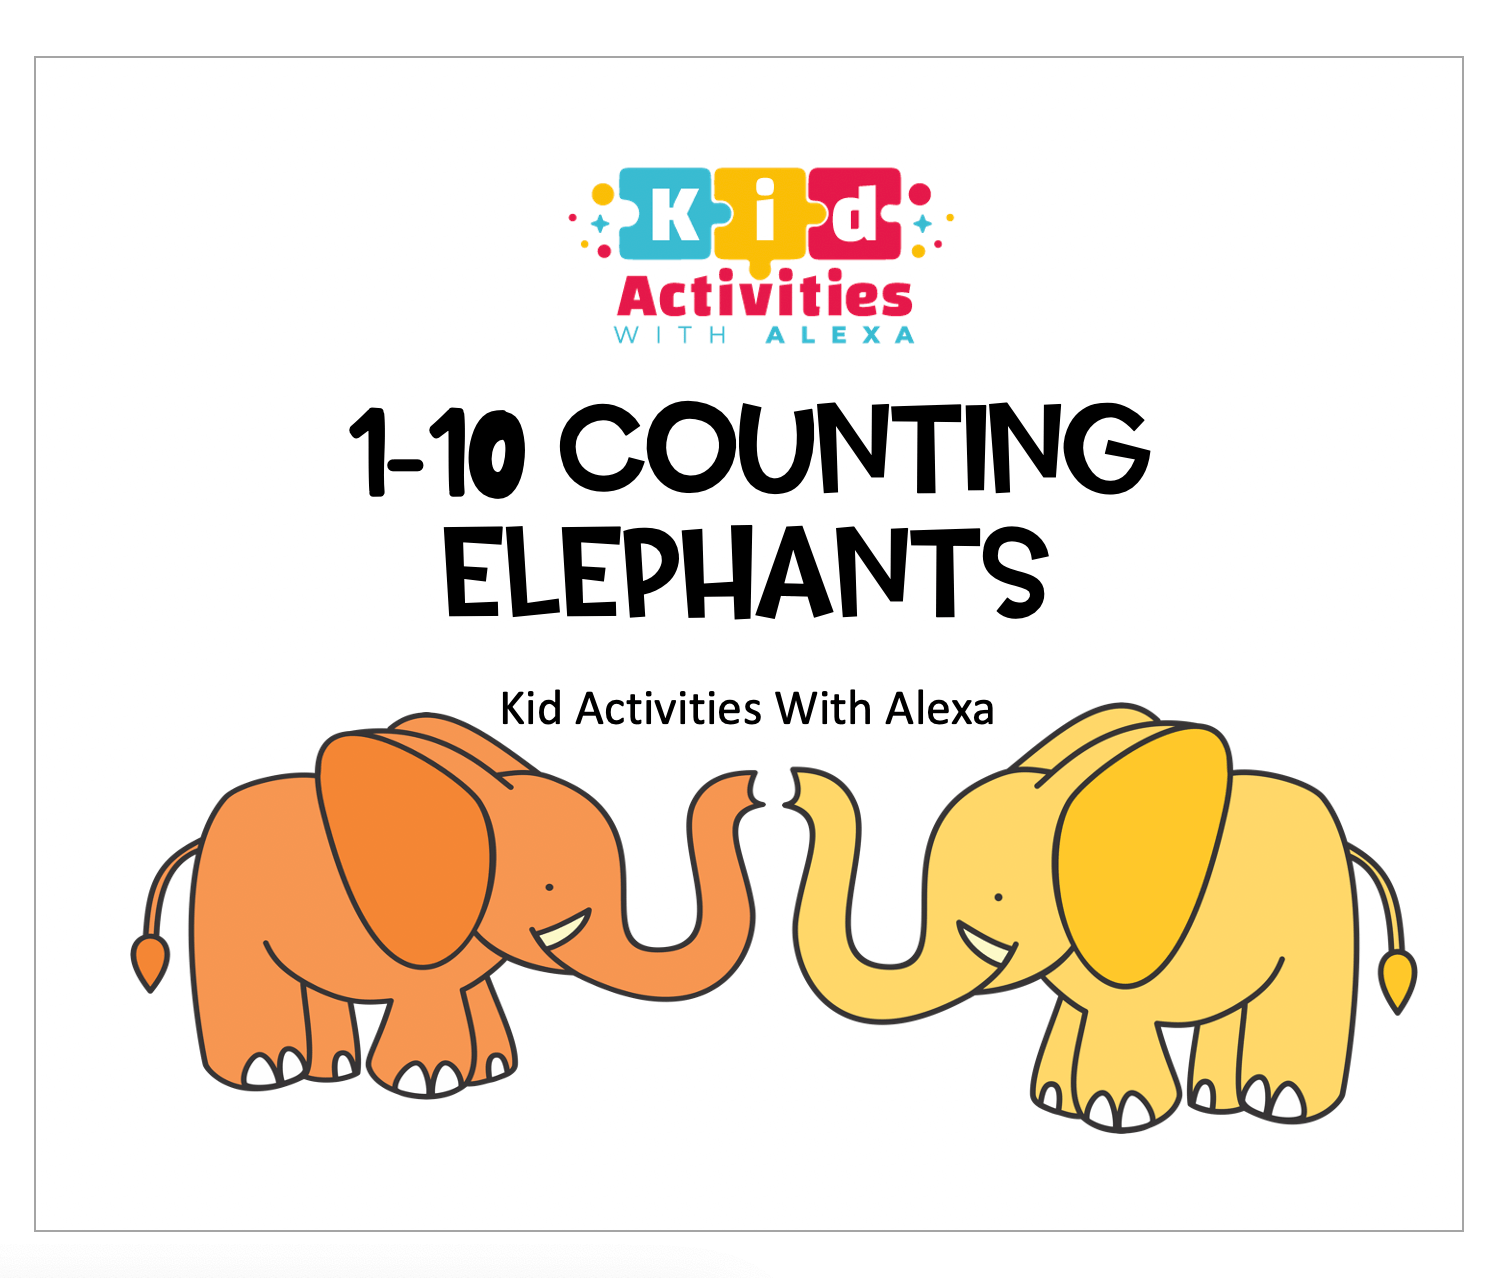 Counting Elephants 1 10